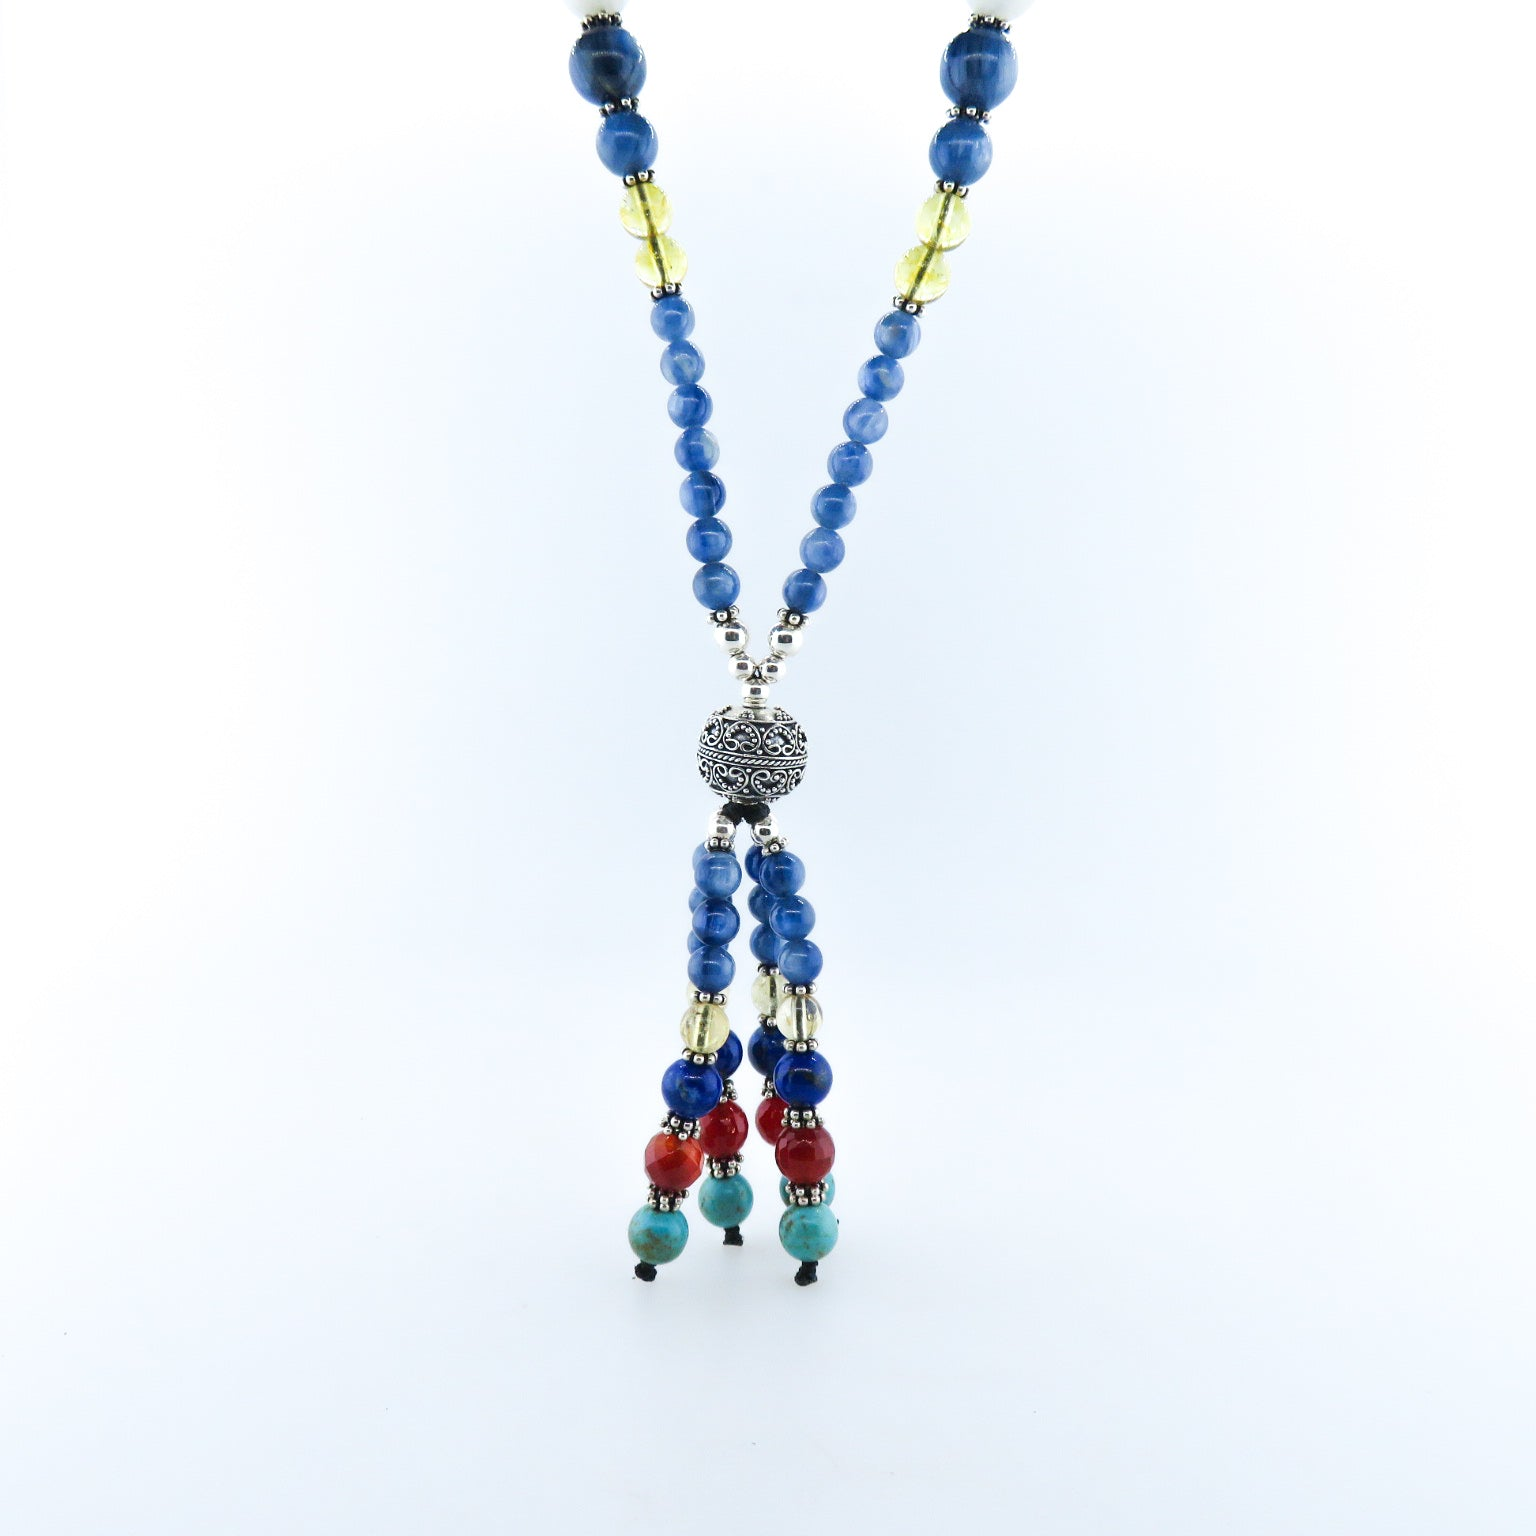 Kyanite Beads Necklace with Citrine, Rainbow Moon Stone, Lapis Lazuli, Carnelian, Turquoise, Jade and Silver Beads